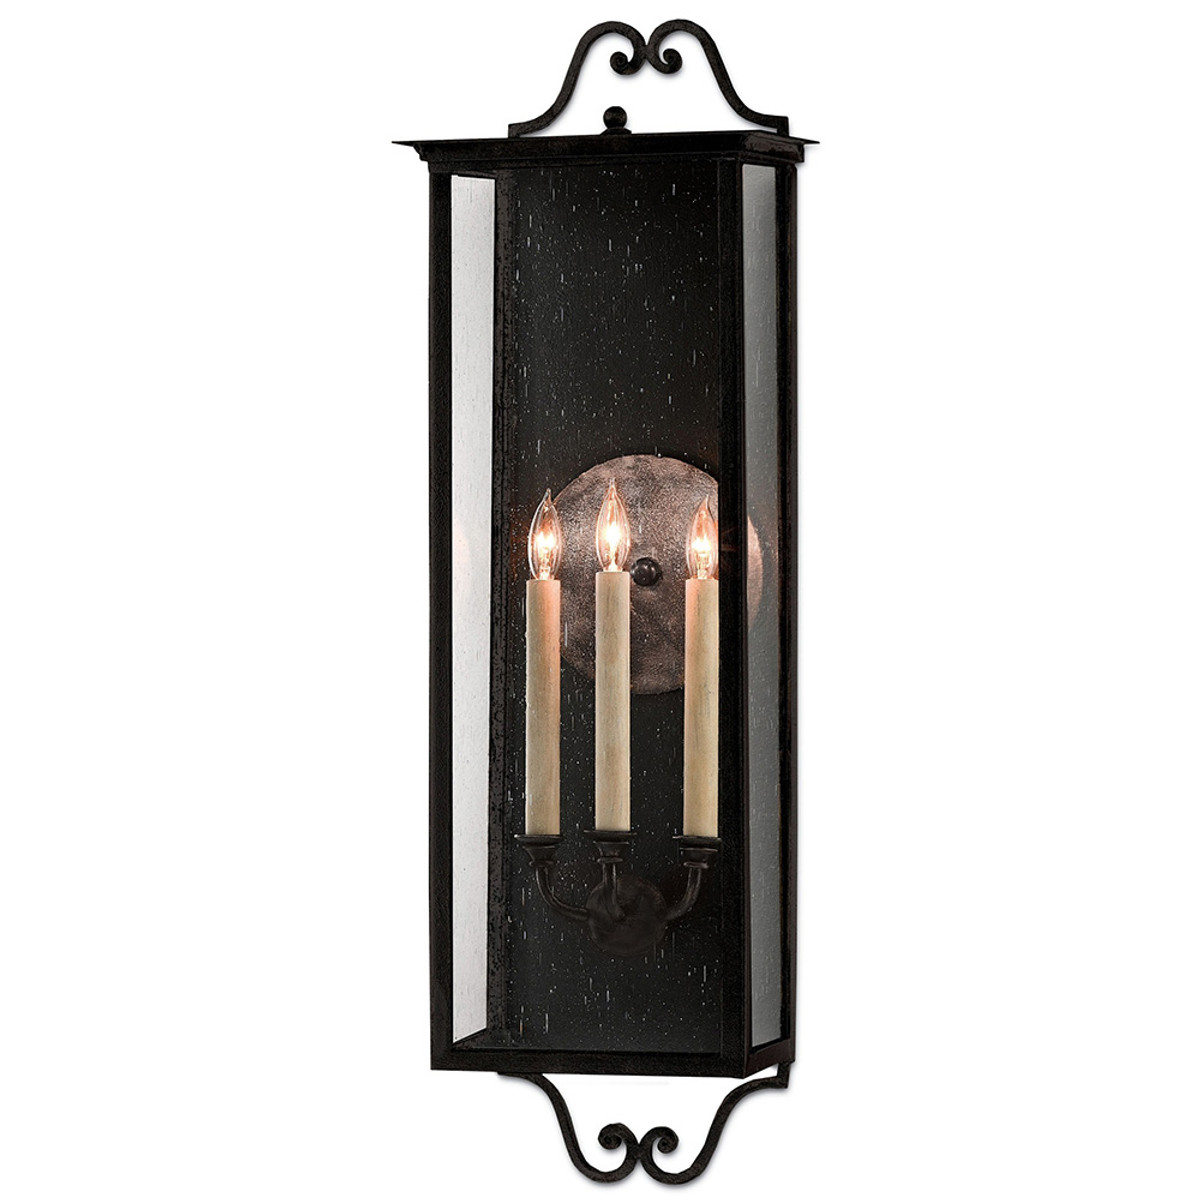 Buy The Giatti Outdoor Wall Sconce Large By Currey Company Price Match Guarantee Free Shipping On All Orders From Lightopia